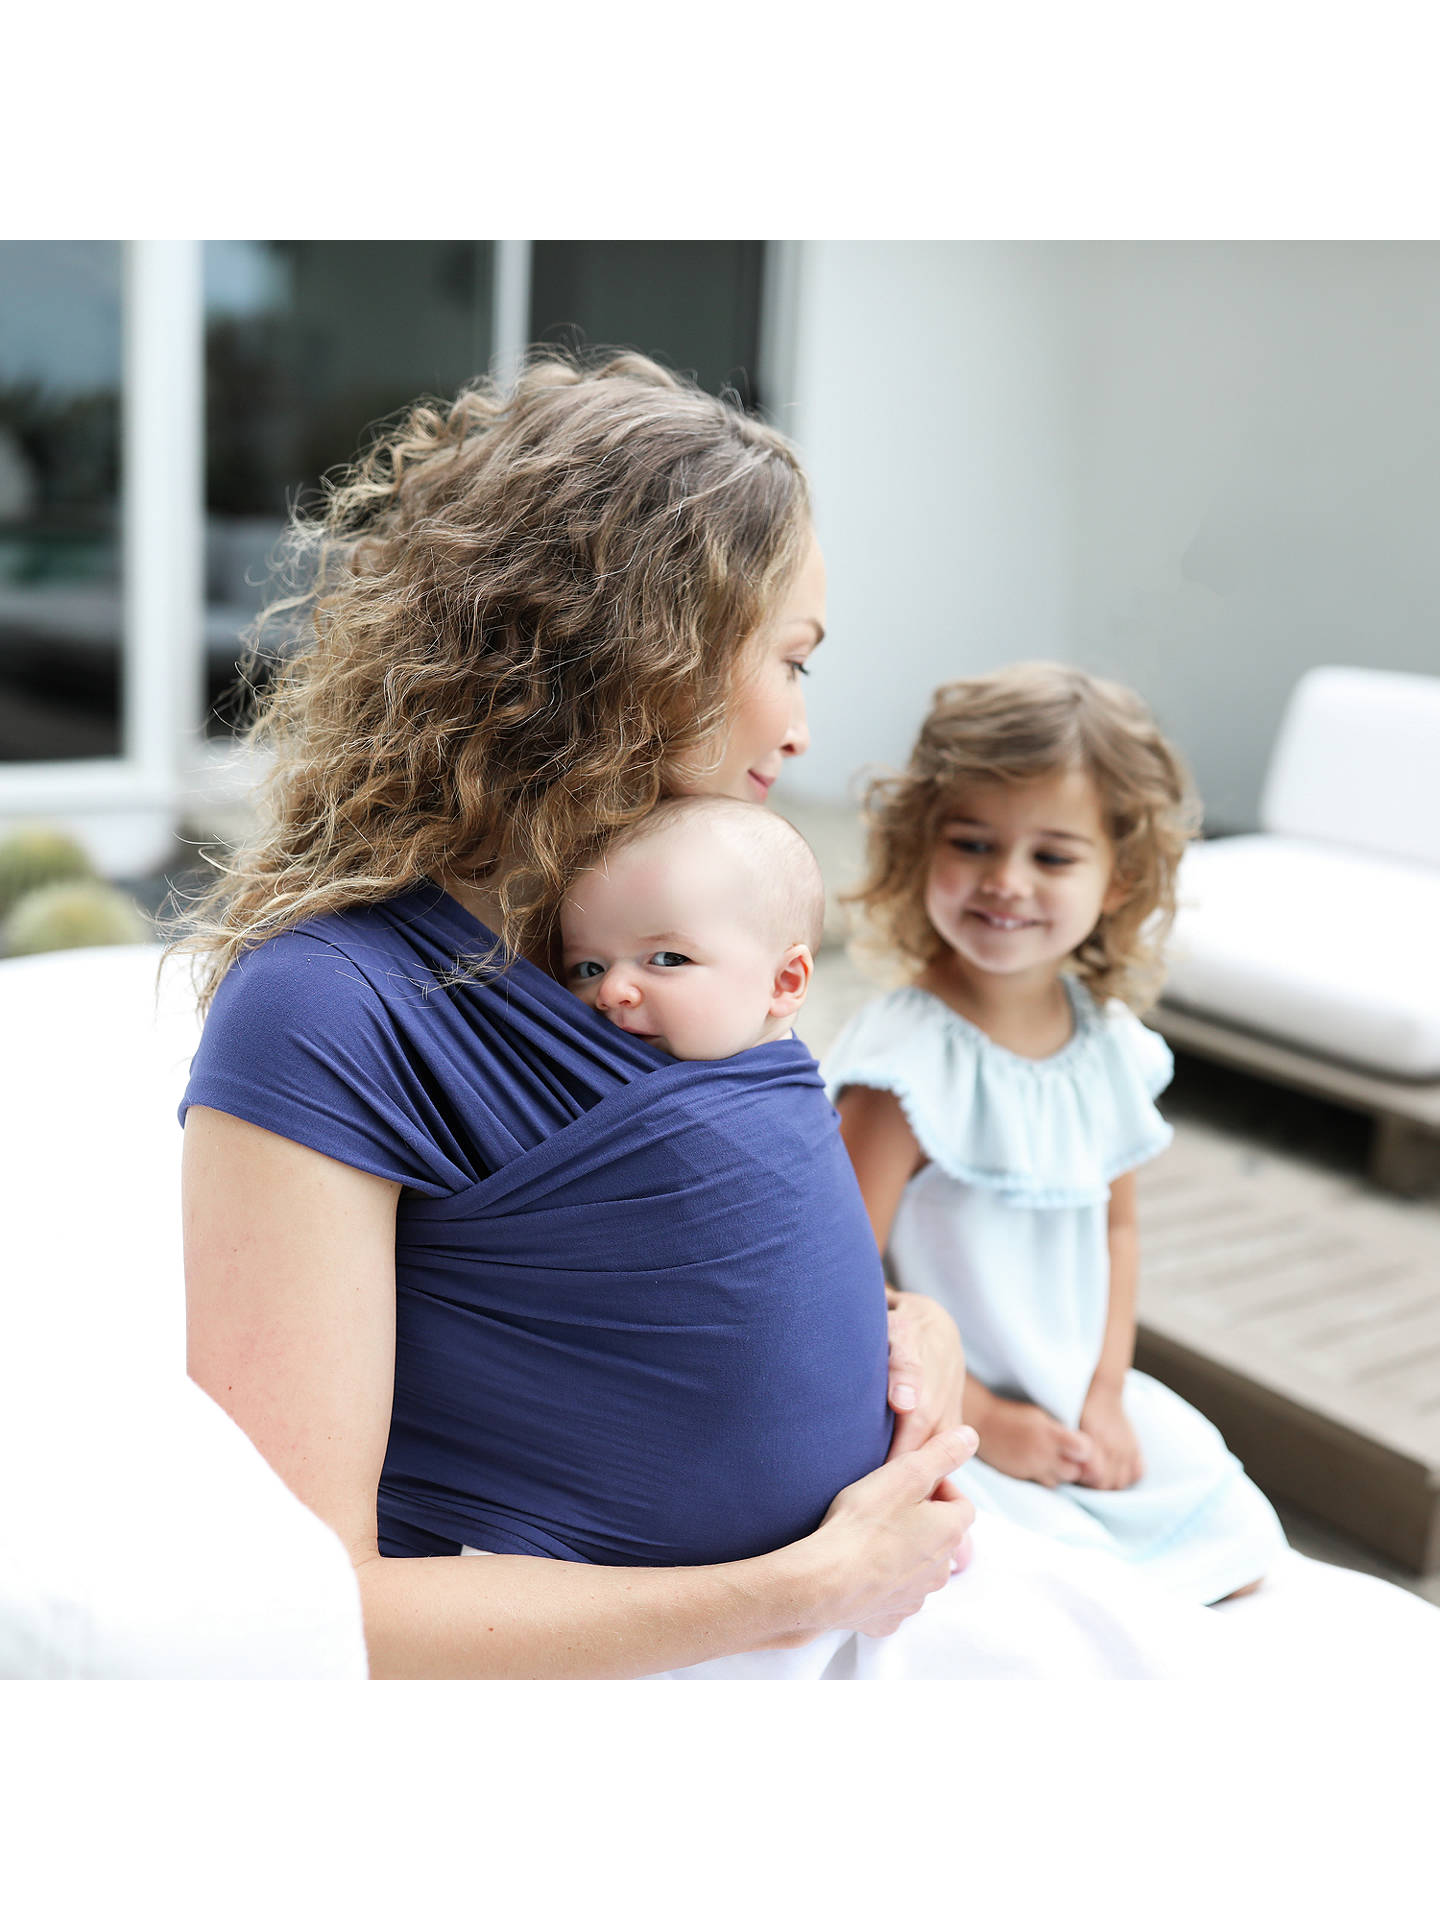 ff7e7f9ee6f89 ... Buy Ergobaby Aura Baby Carrier Wrap, Indigo Online at johnlewis.com